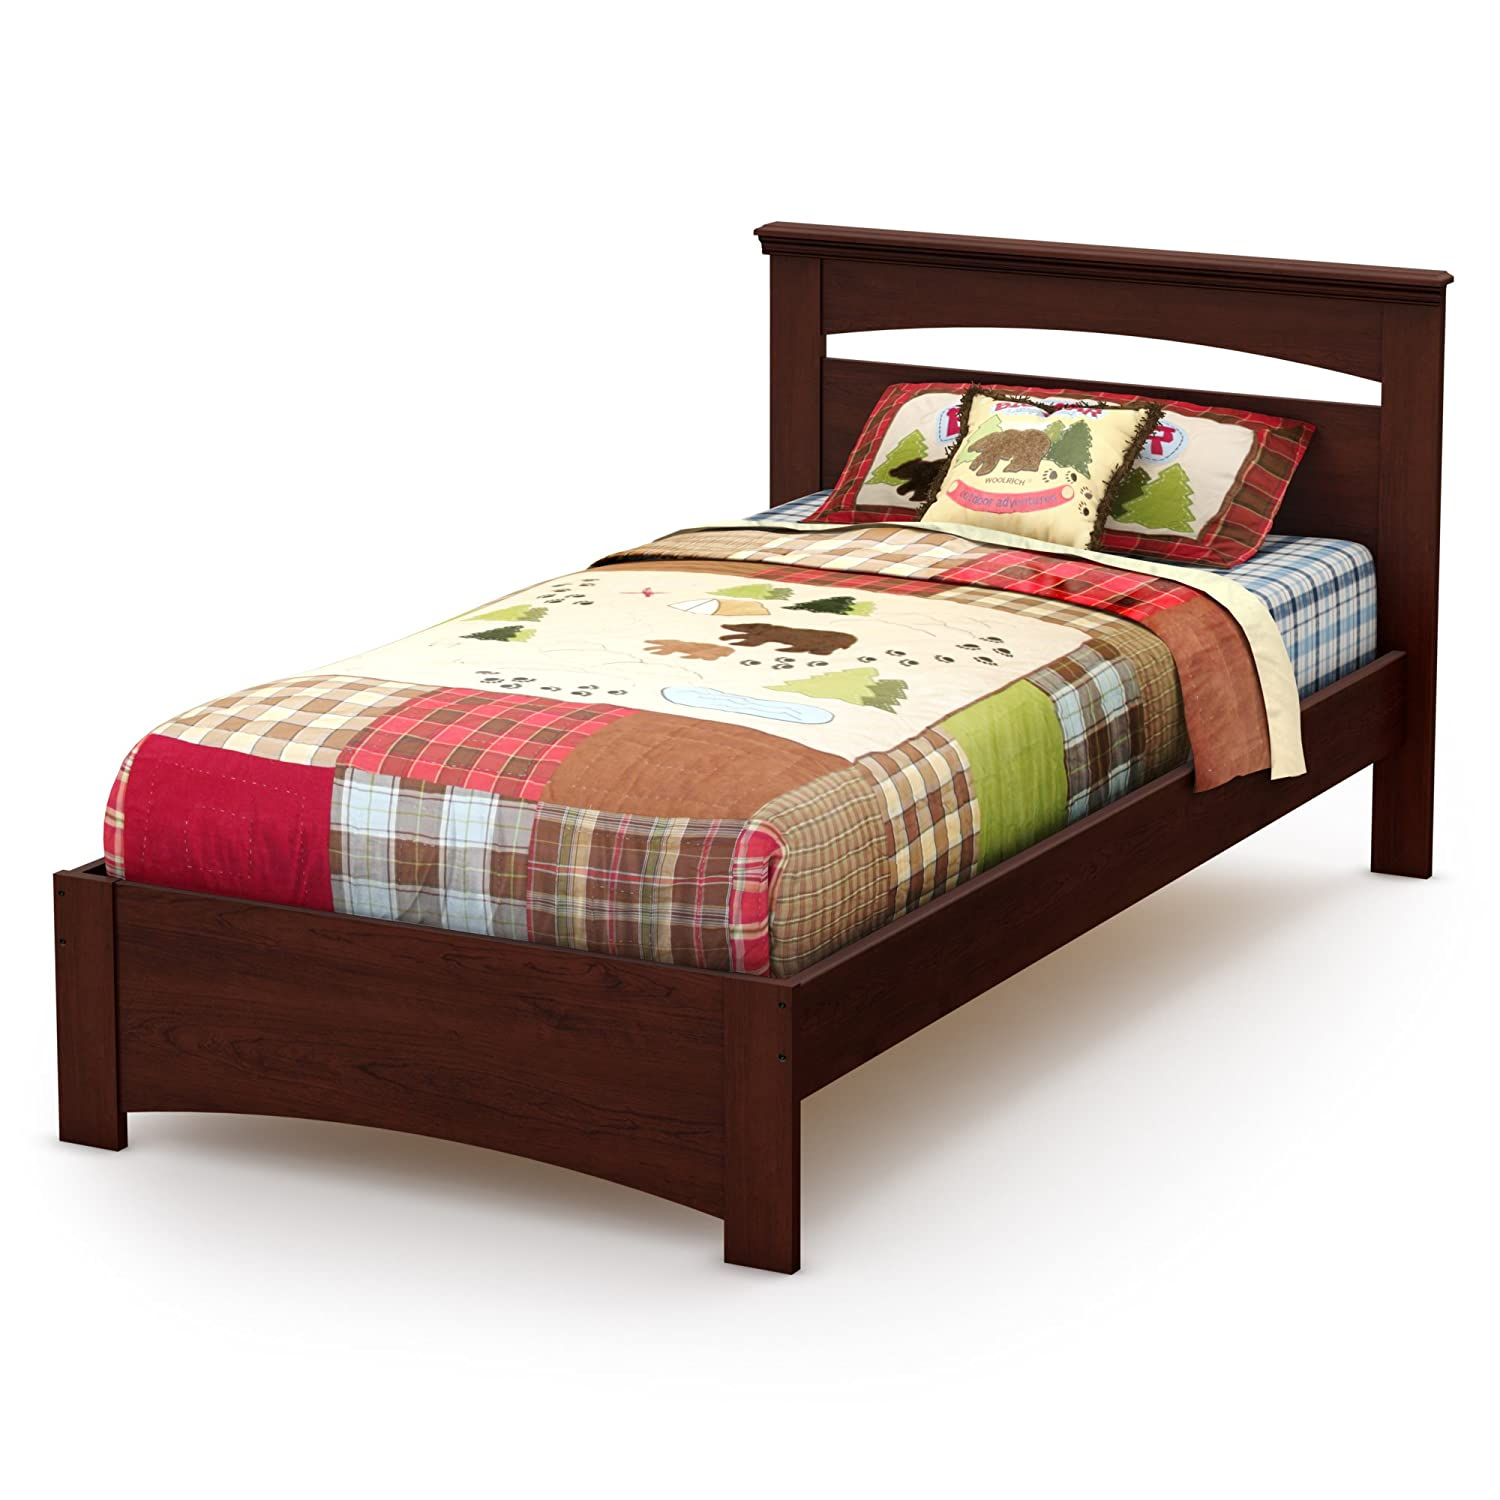 Awesome Amazon.com: South Shore Libra Bed U0026 Headboard Set, Twin 39 Inch, Royal  Cherry: Kitchen U0026 Dining